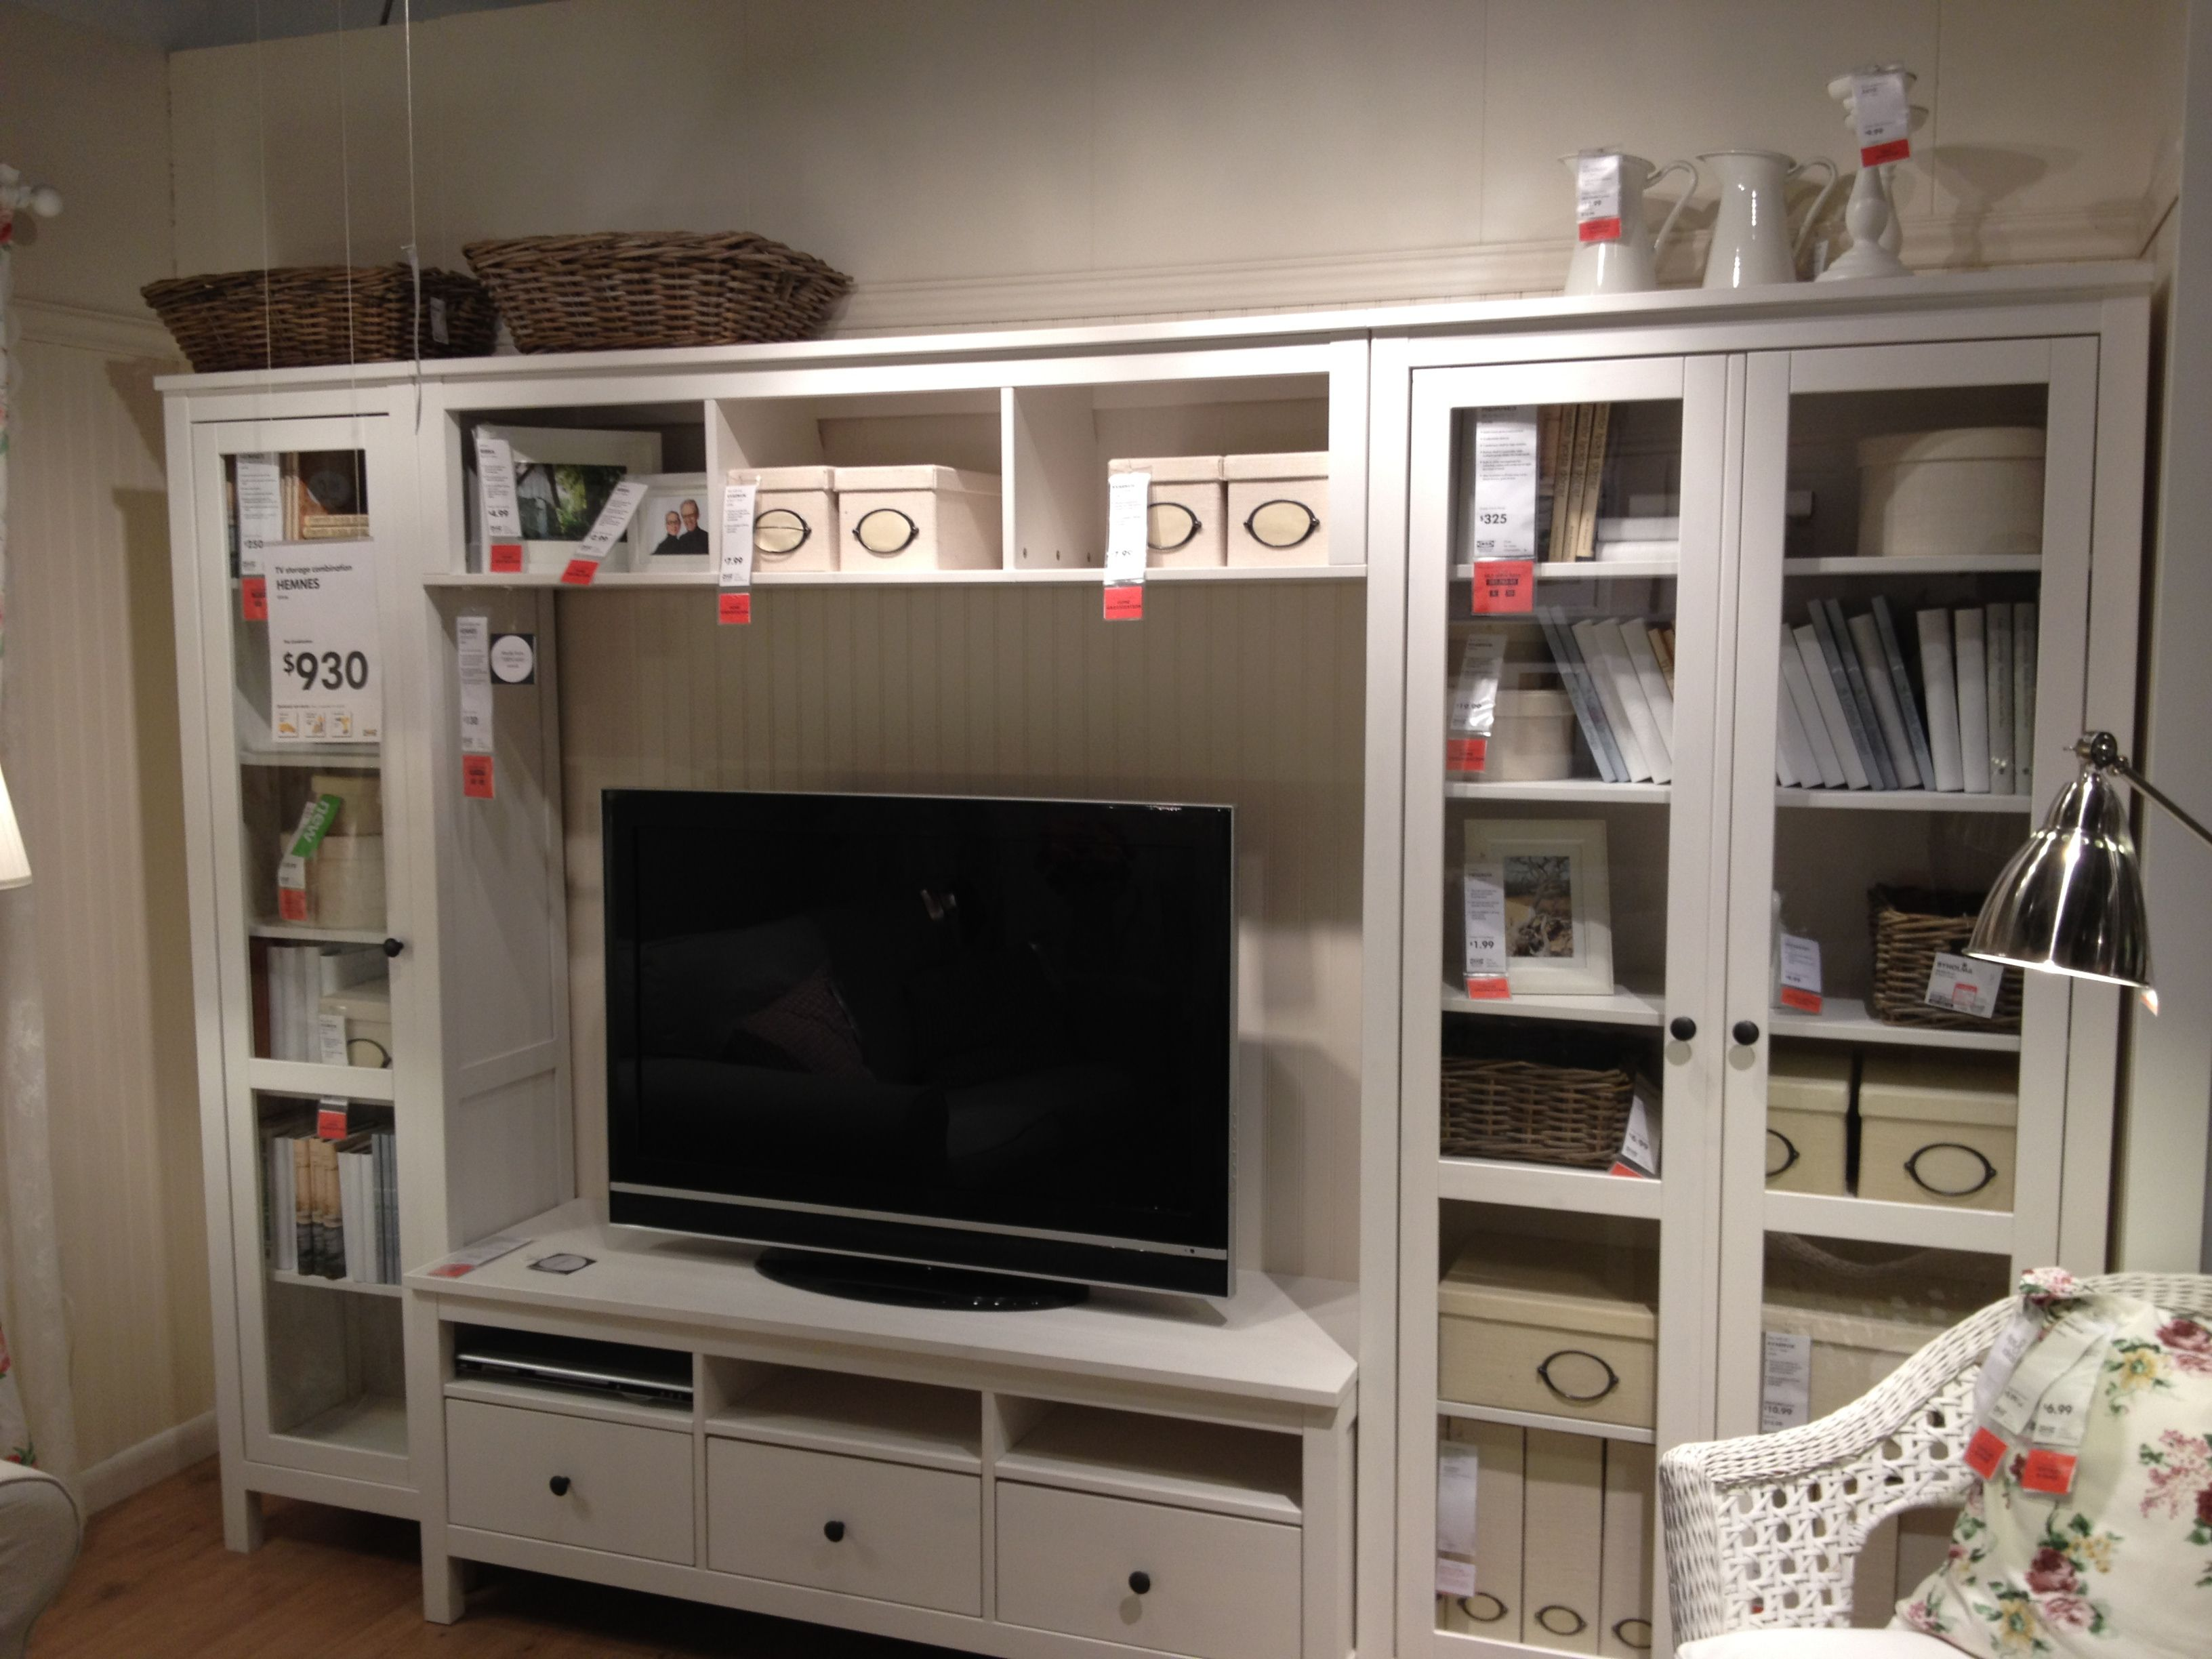 TV Storage Combination Ikea Hemnes $930